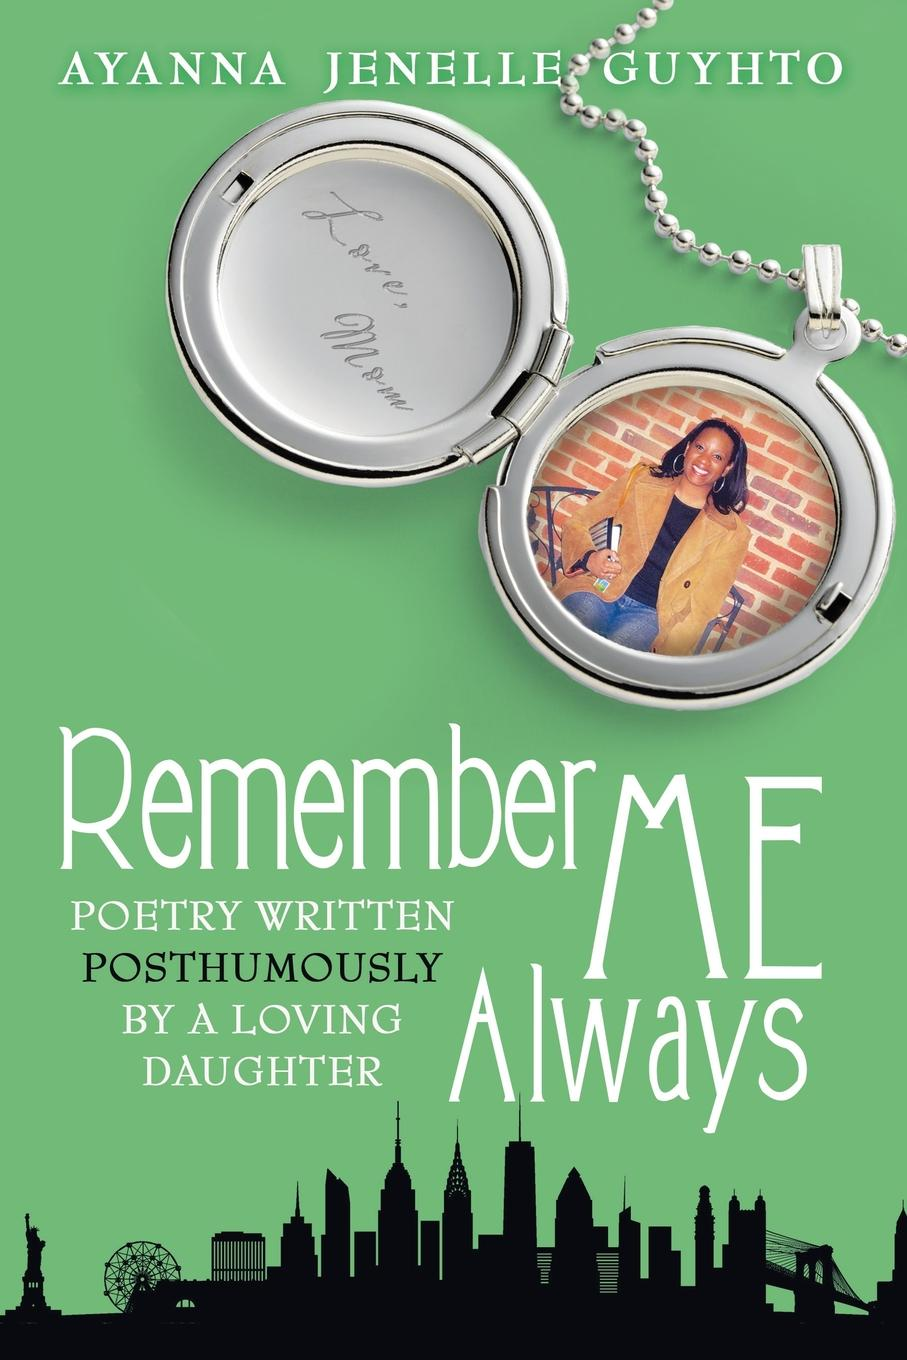 Ayanna Jenelle Guyhto Remember ME Always. Poetry Written Posthumously by a Loving Daughter emerald de young inspire me